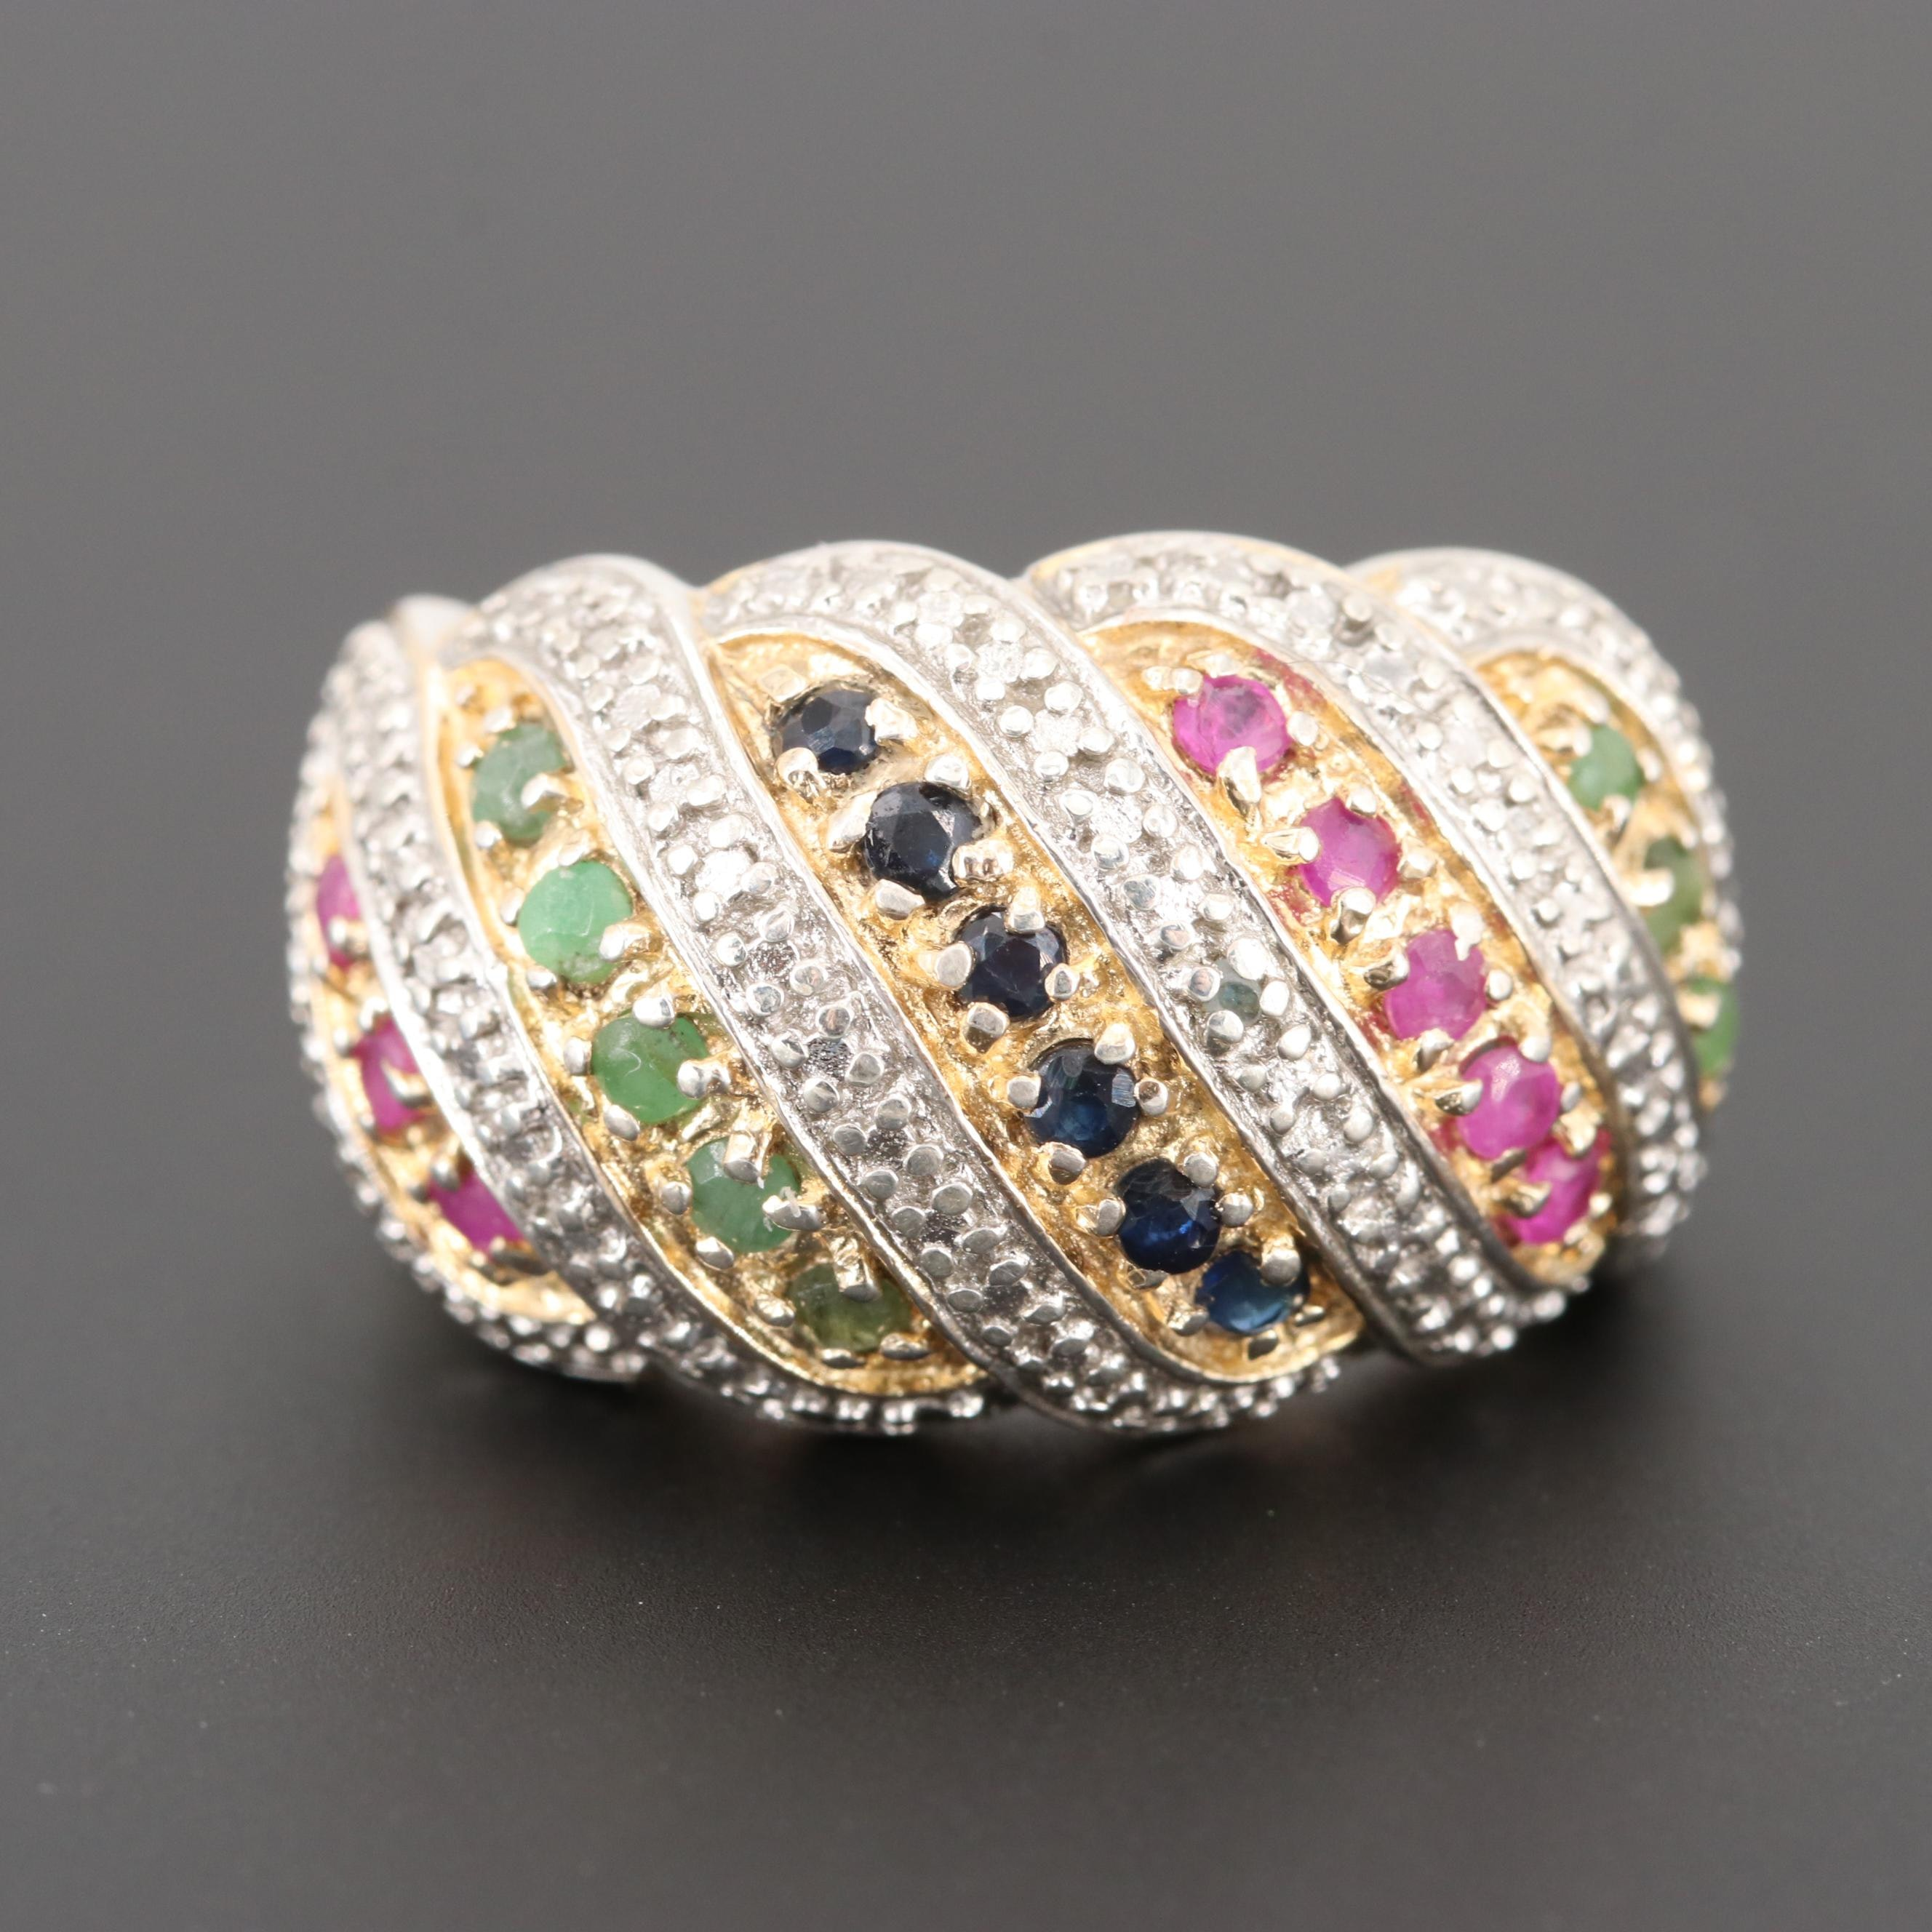 Sterling Silver Emerald, Ruby, Sapphire and Diamond Ring with Gold Wash Accents